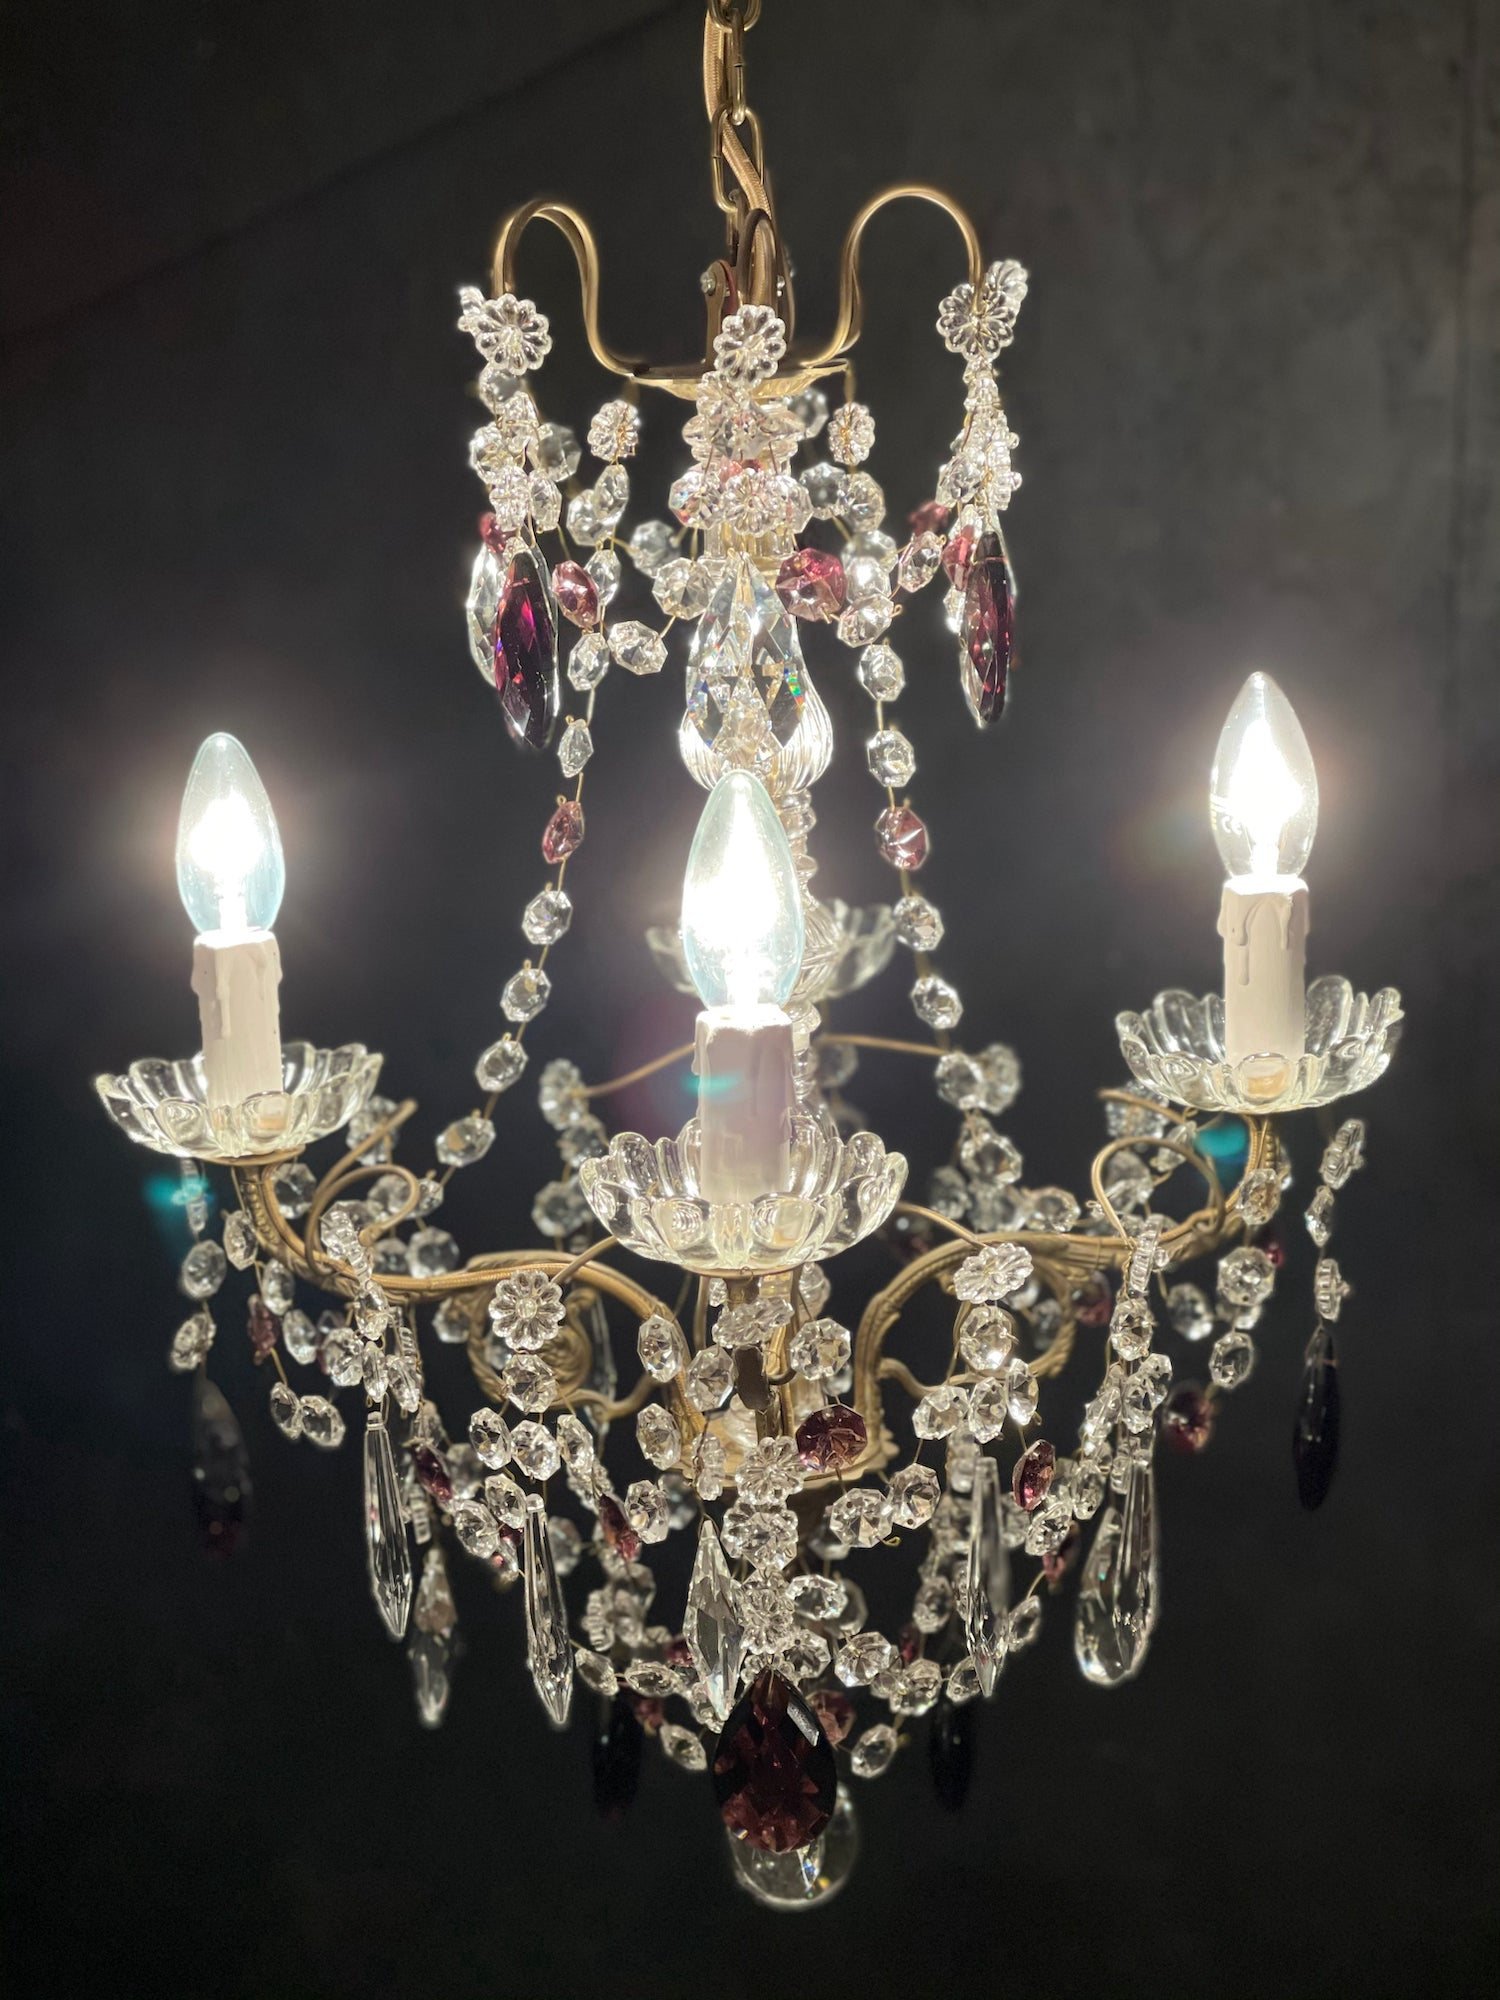 Vintage French Chandelier - Sophie